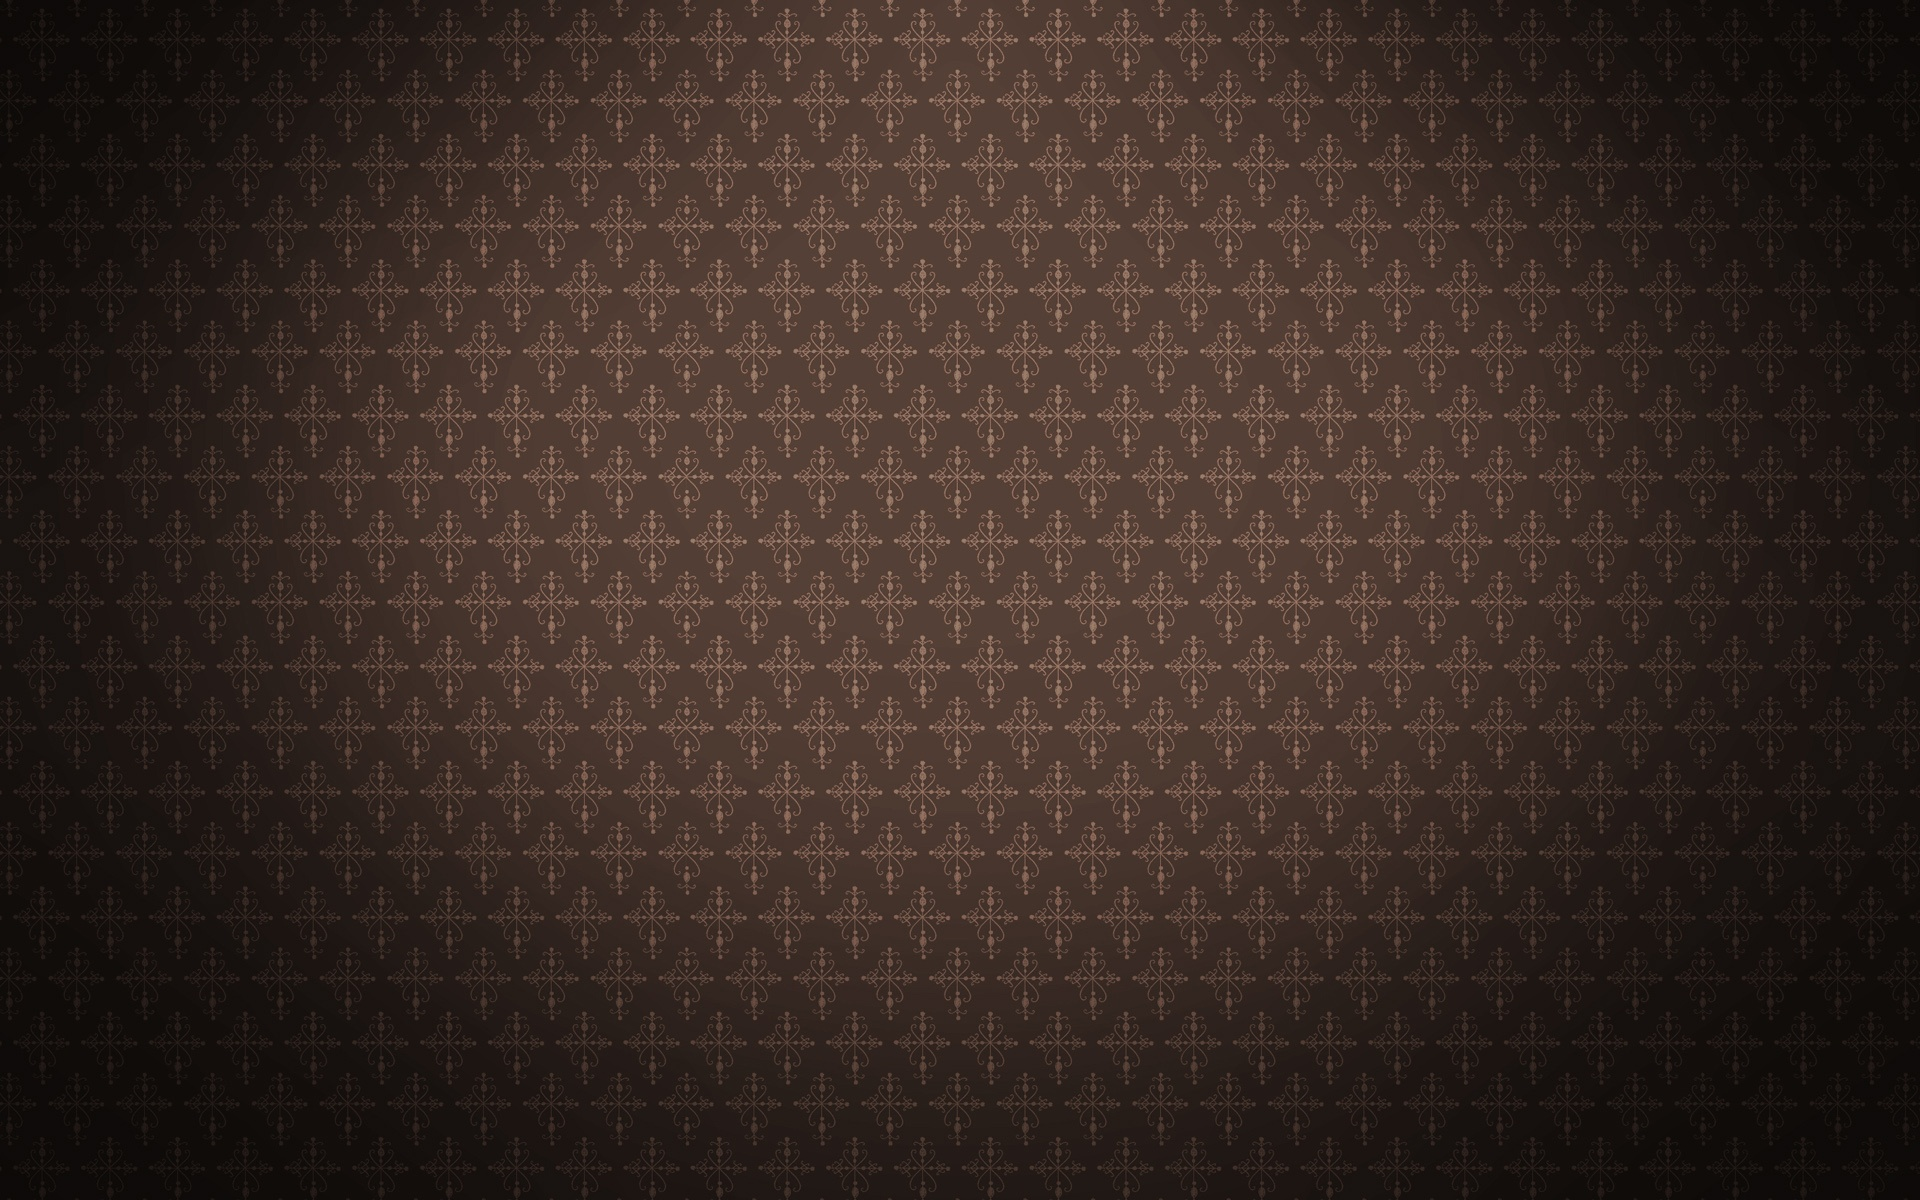 vintage twitter backgrounds background cool 1920x1200 1920x1200